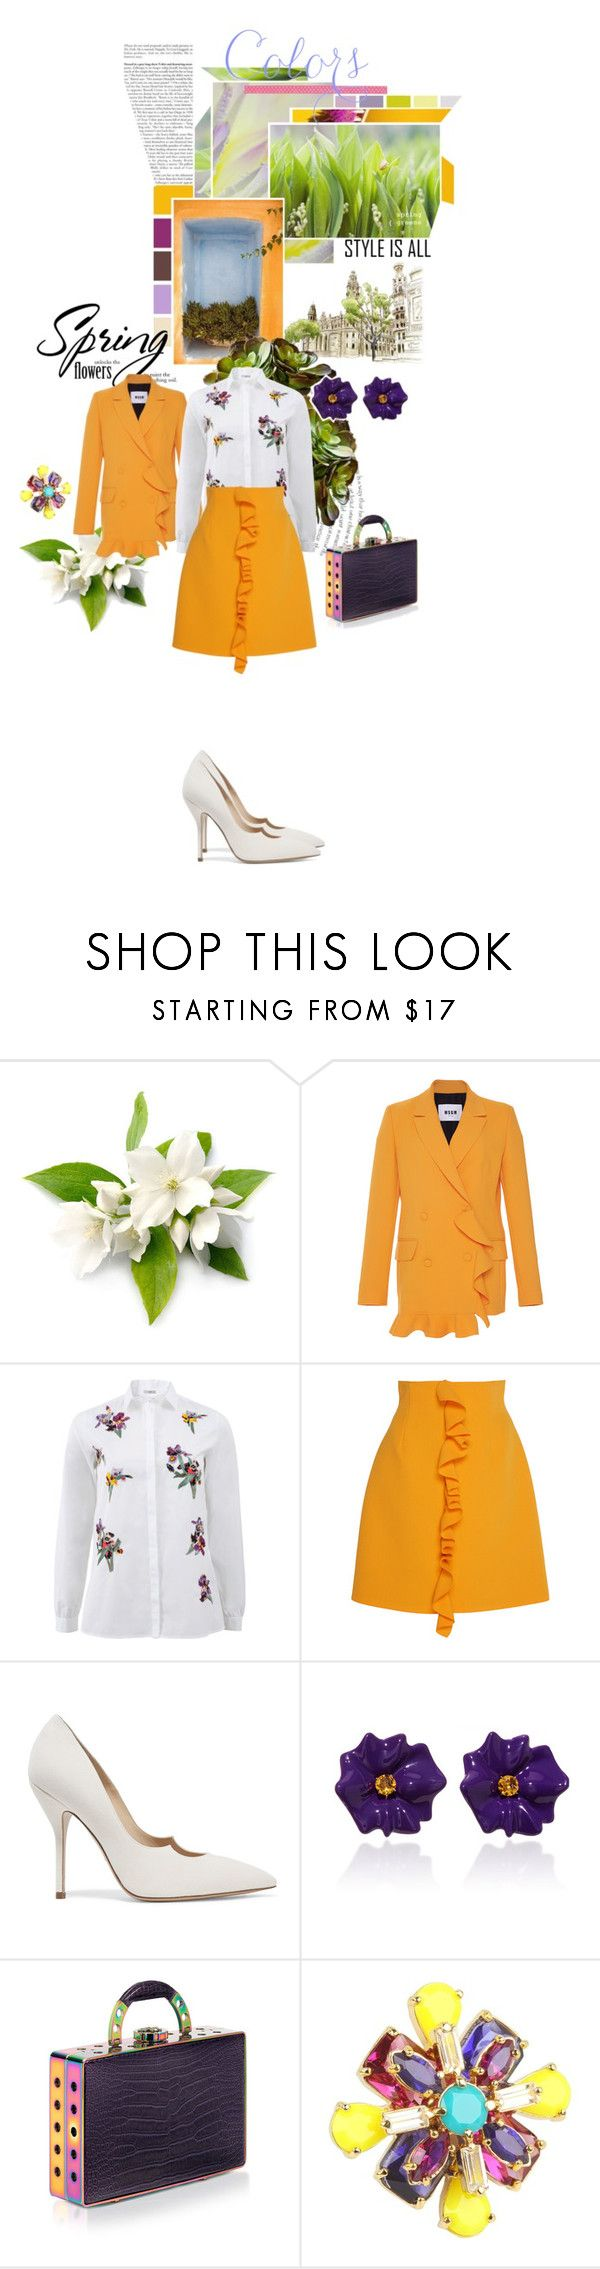 """2232.Spring and flowers"" by sylviedupuywriter ❤ liked on Polyvore featuring MSGM, Etro, Paul Andrew, Sabbadini, Bougeotte and Kate Spade"